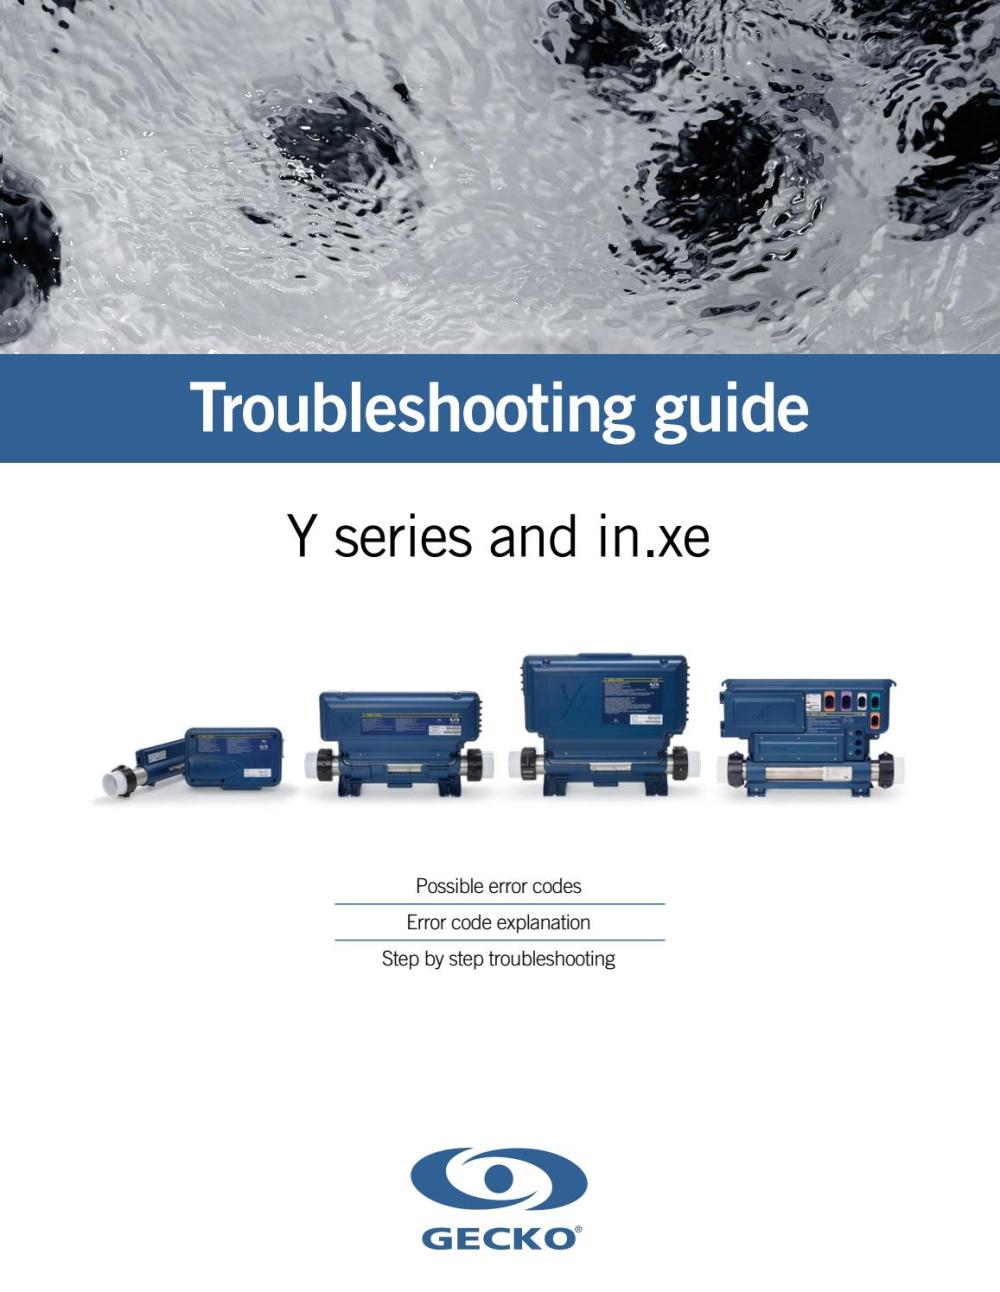 medium resolution of troubleshooting guide for y series in xe from gecko marketing